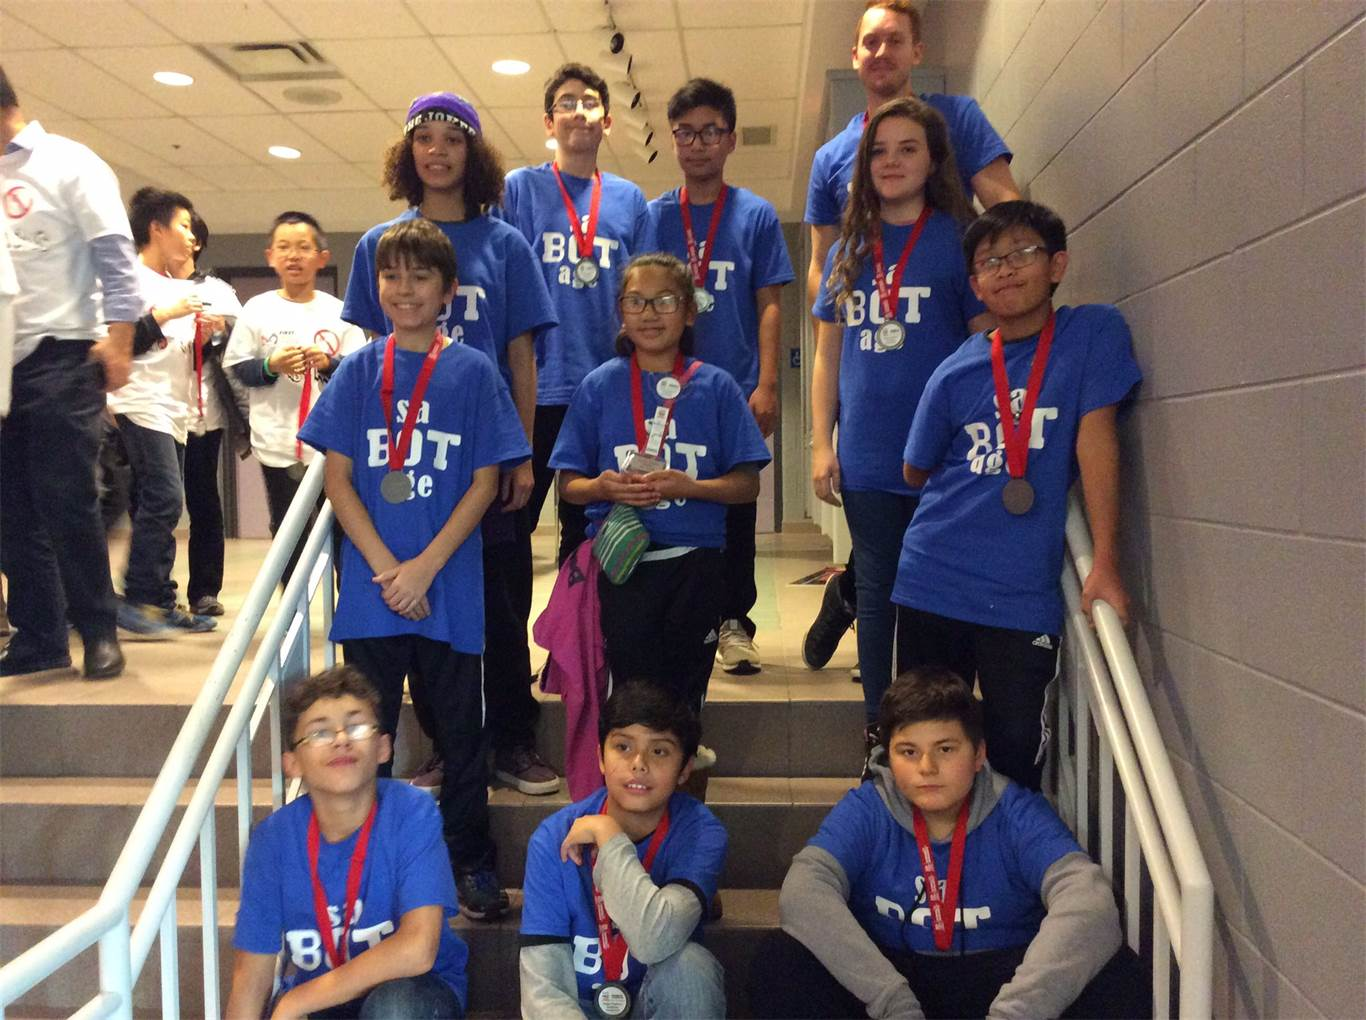 St. Ann (Hamilton) Sa-BOT-age Team 16086 won the Robot Design Award at the FIRST LEGO League Niagara Regional Qualifier on Dec. 2. This is the team's first foray into robotics.